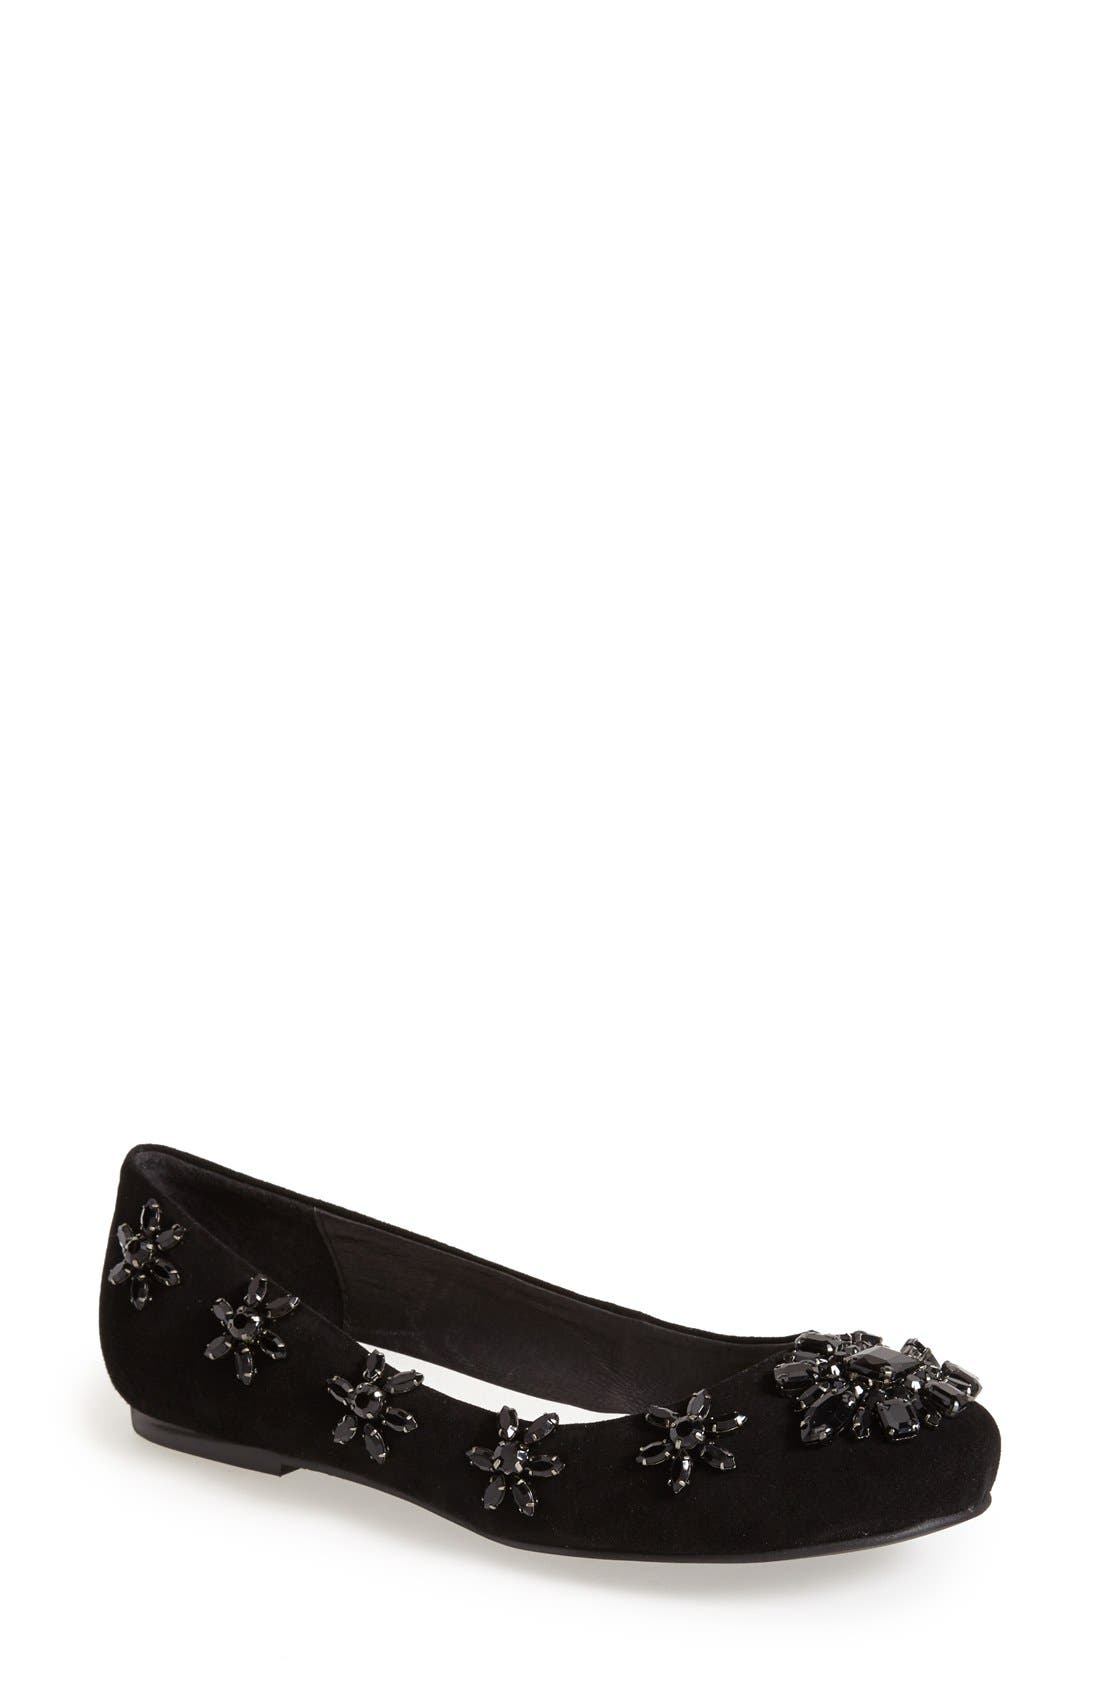 Alternate Image 1 Selected - Jeffrey Campbell 'Tres-Orne' Ballet Flat (Women)